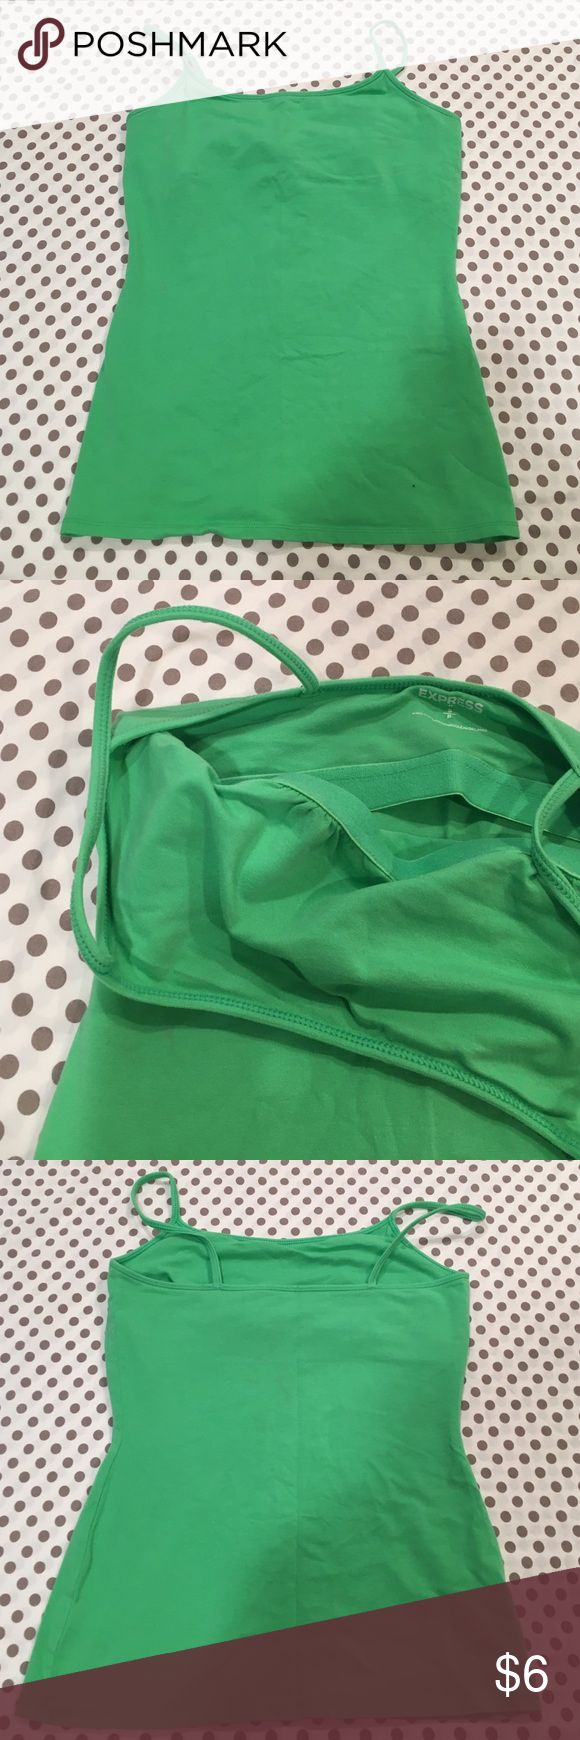 Express Tanktop Spaghetti strap green tank top with built in bra from Express Express Tops Tank Tops